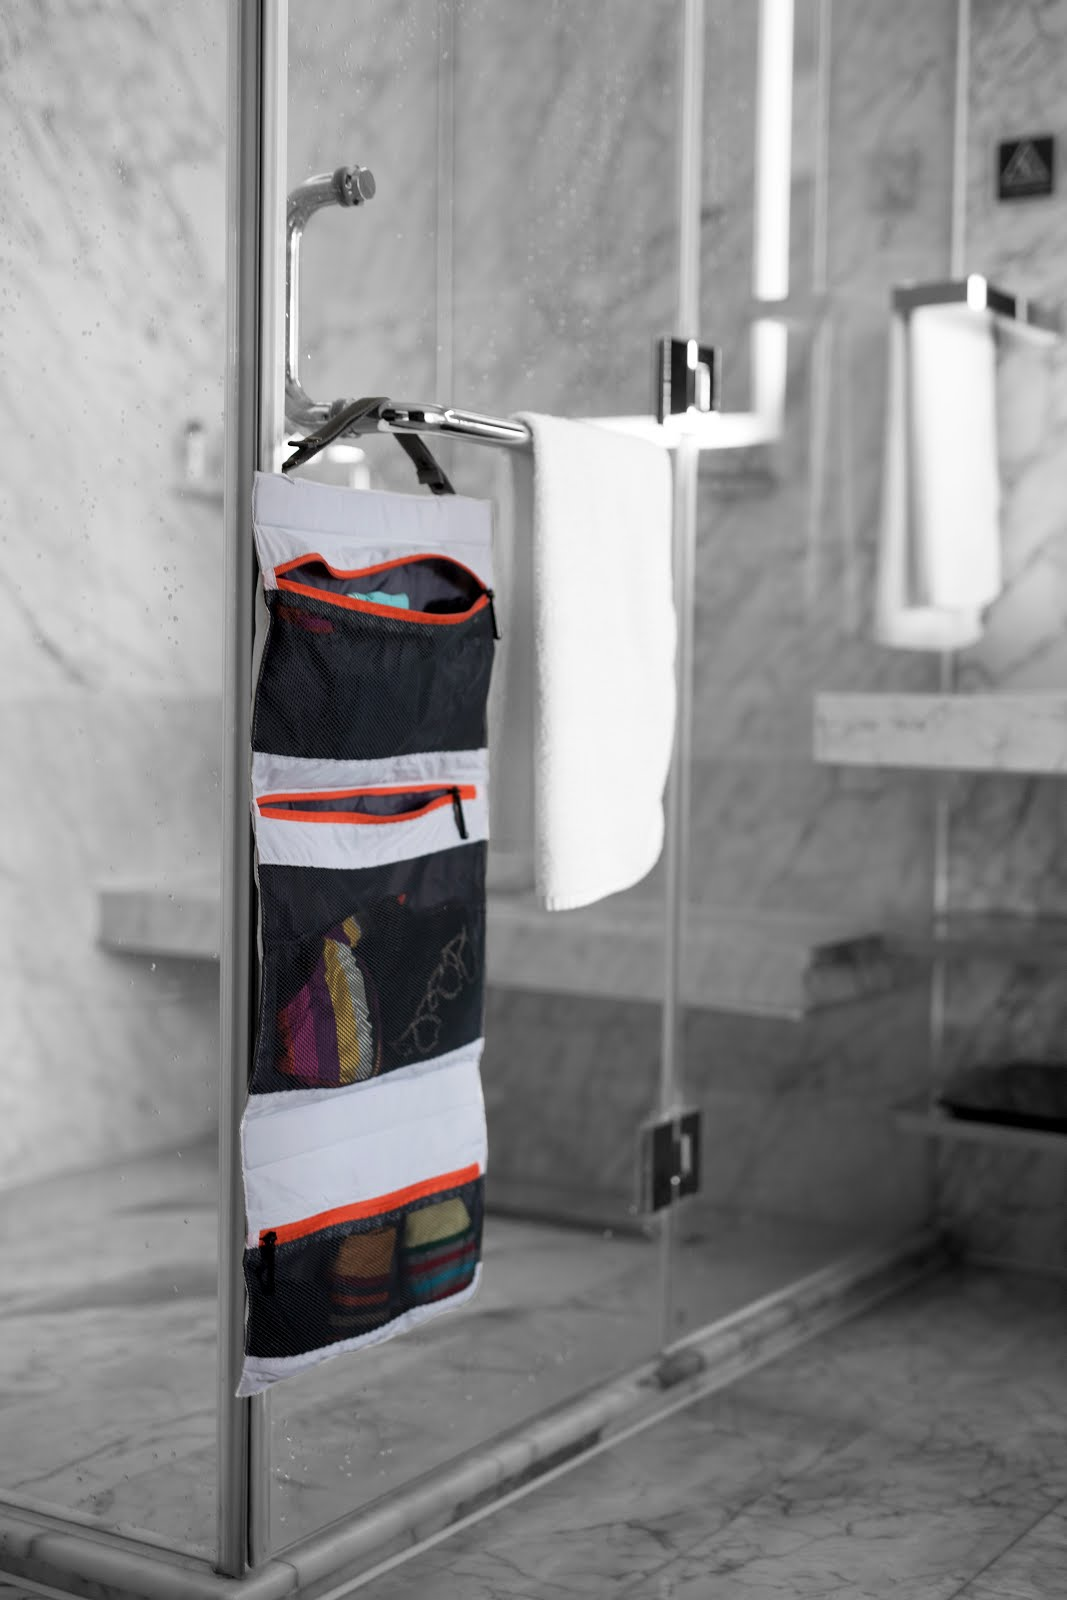 TUO - easy access to undergarments in your hotel bathroom